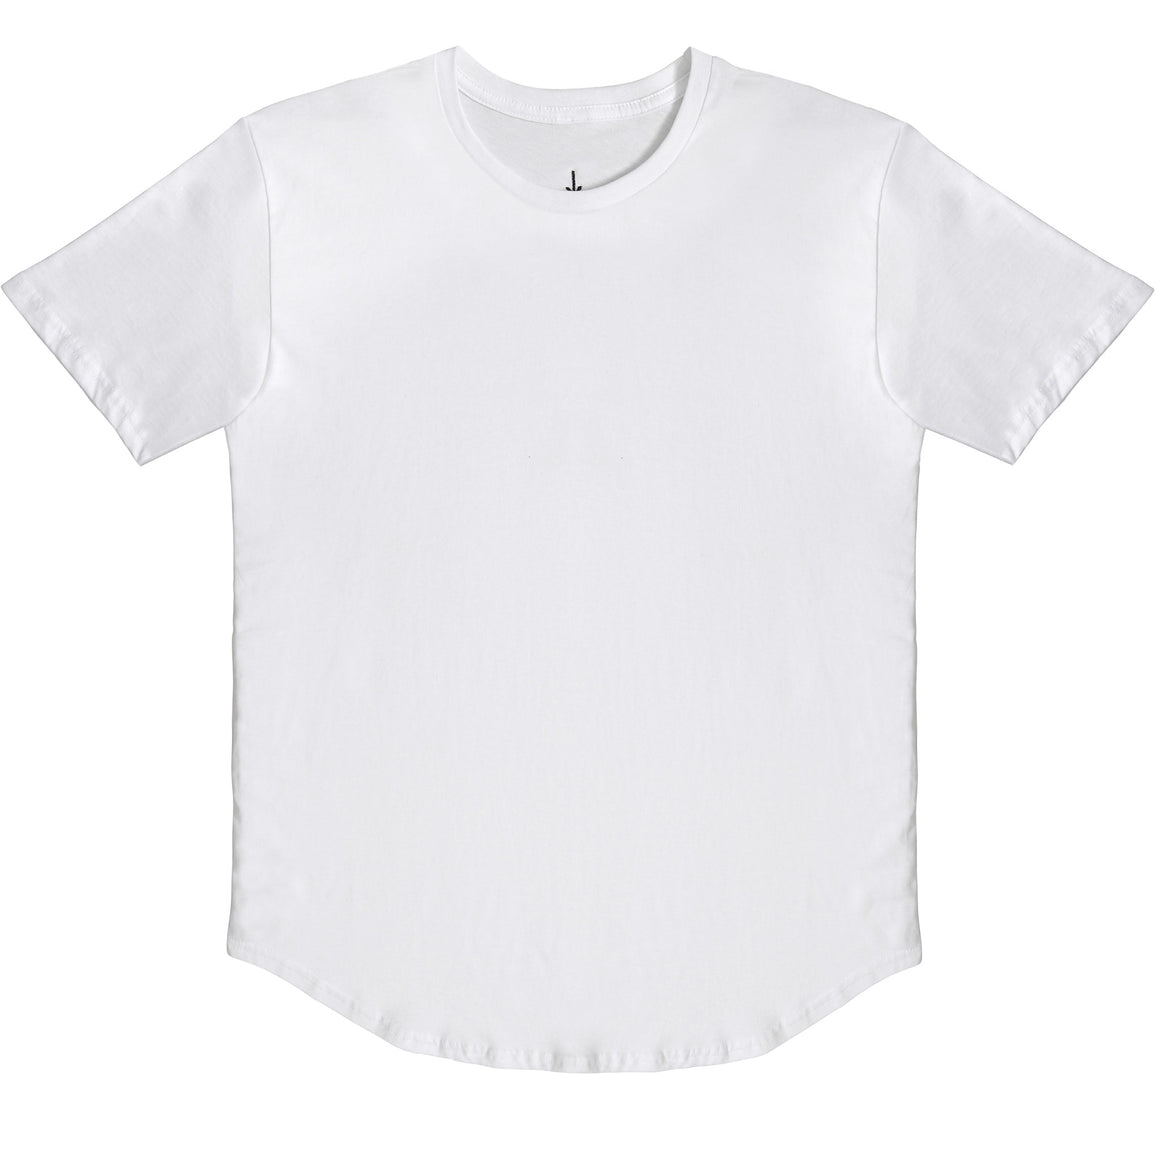 Essential Scallop Tee - White